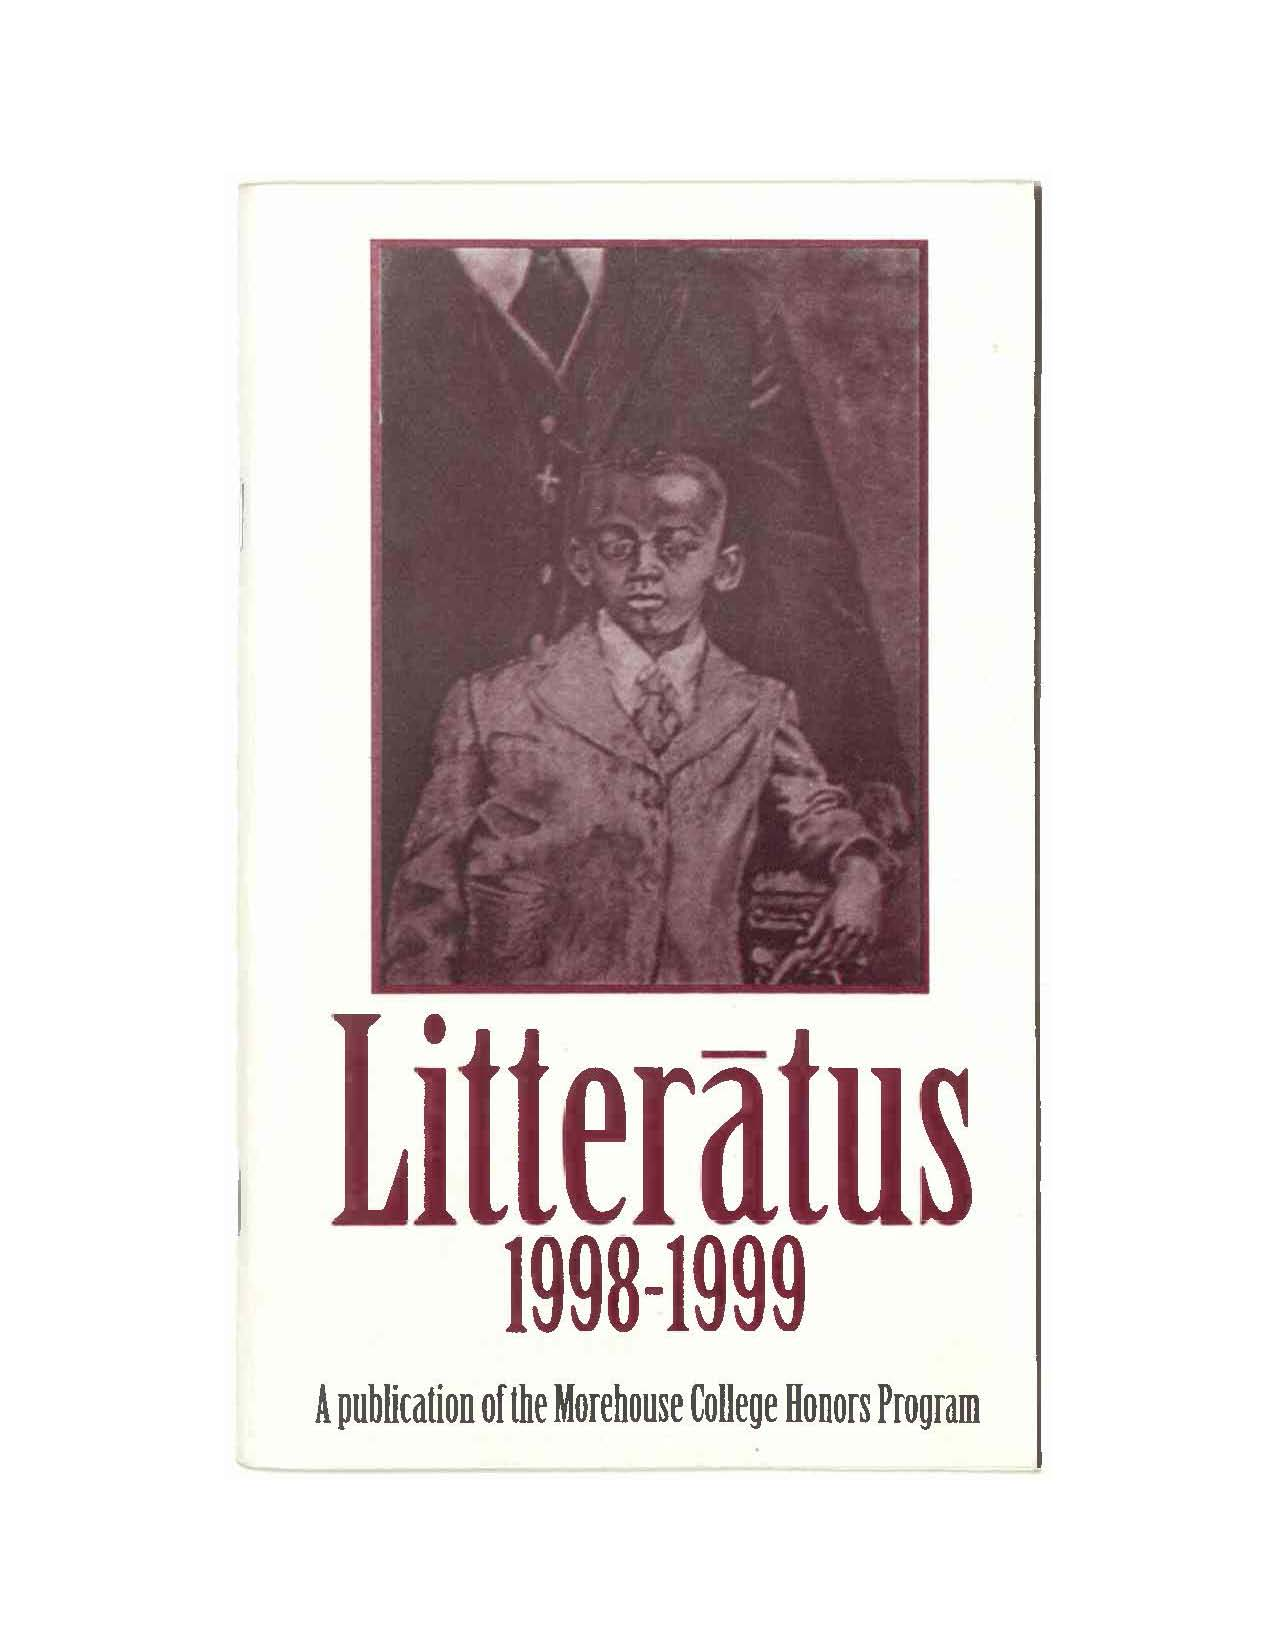 Litteratus 1998-1999 cover image